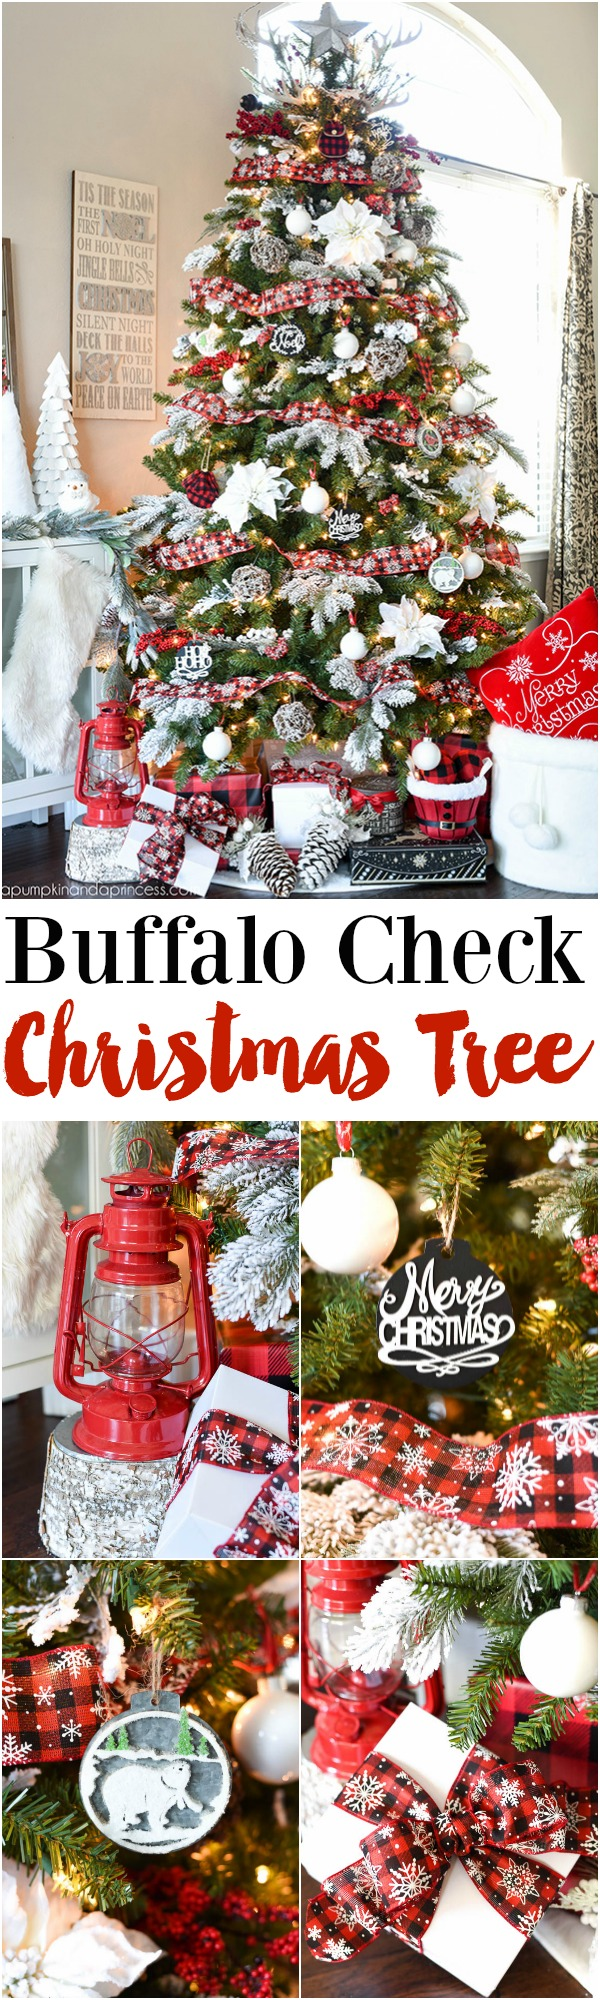 buffalo check christmas tree michaels dream tree - Buffalo Check Christmas Decor